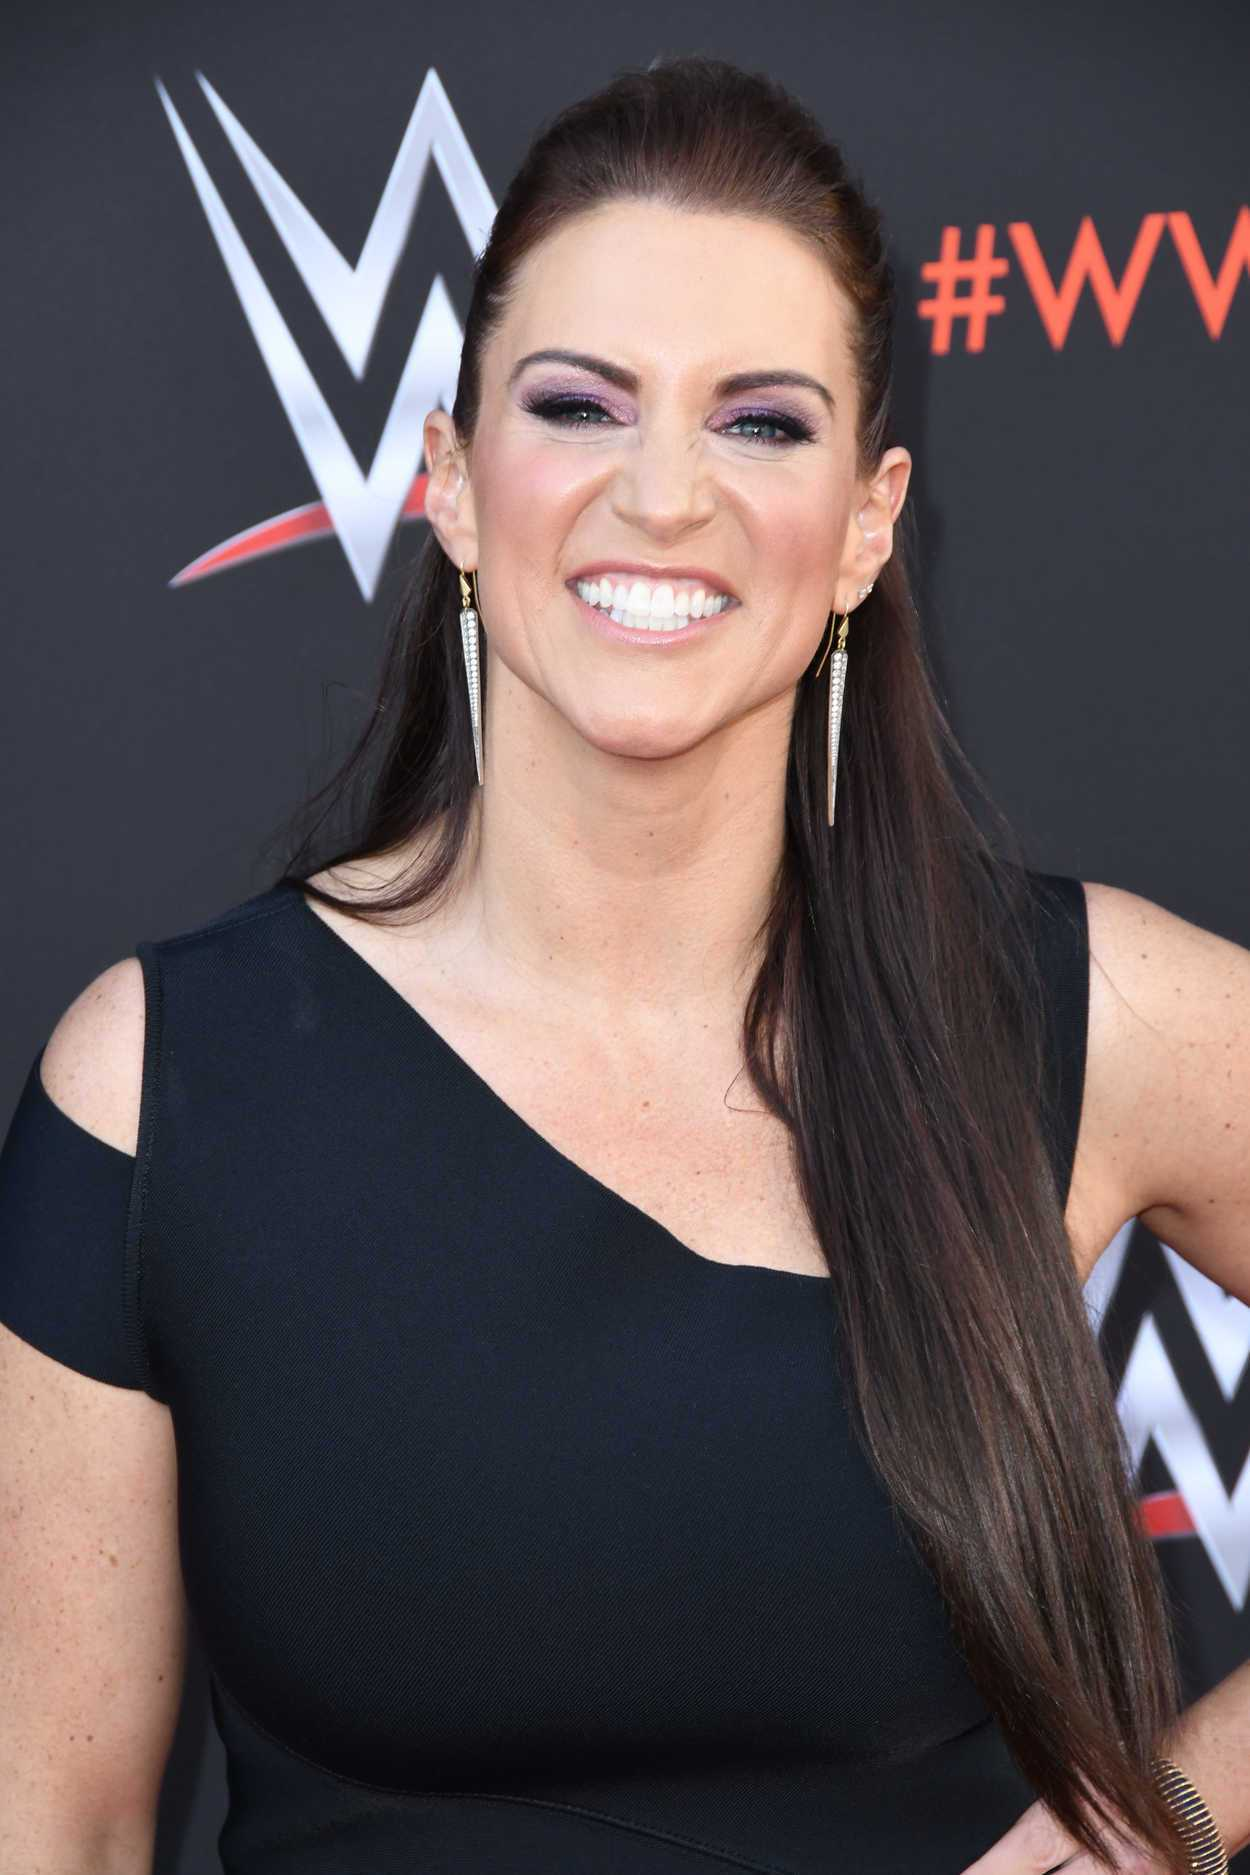 70+ Hot Pictures Of Stephanie McMahon WWE Diva - Page 4 of ...